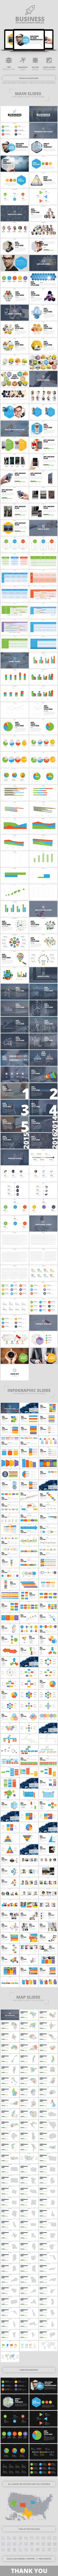 Business Pitch Deck Keynote Template. Download here: http://graphicriver.net/item/business-pitch-deck-keynote-template/15814263?ref=ksioks